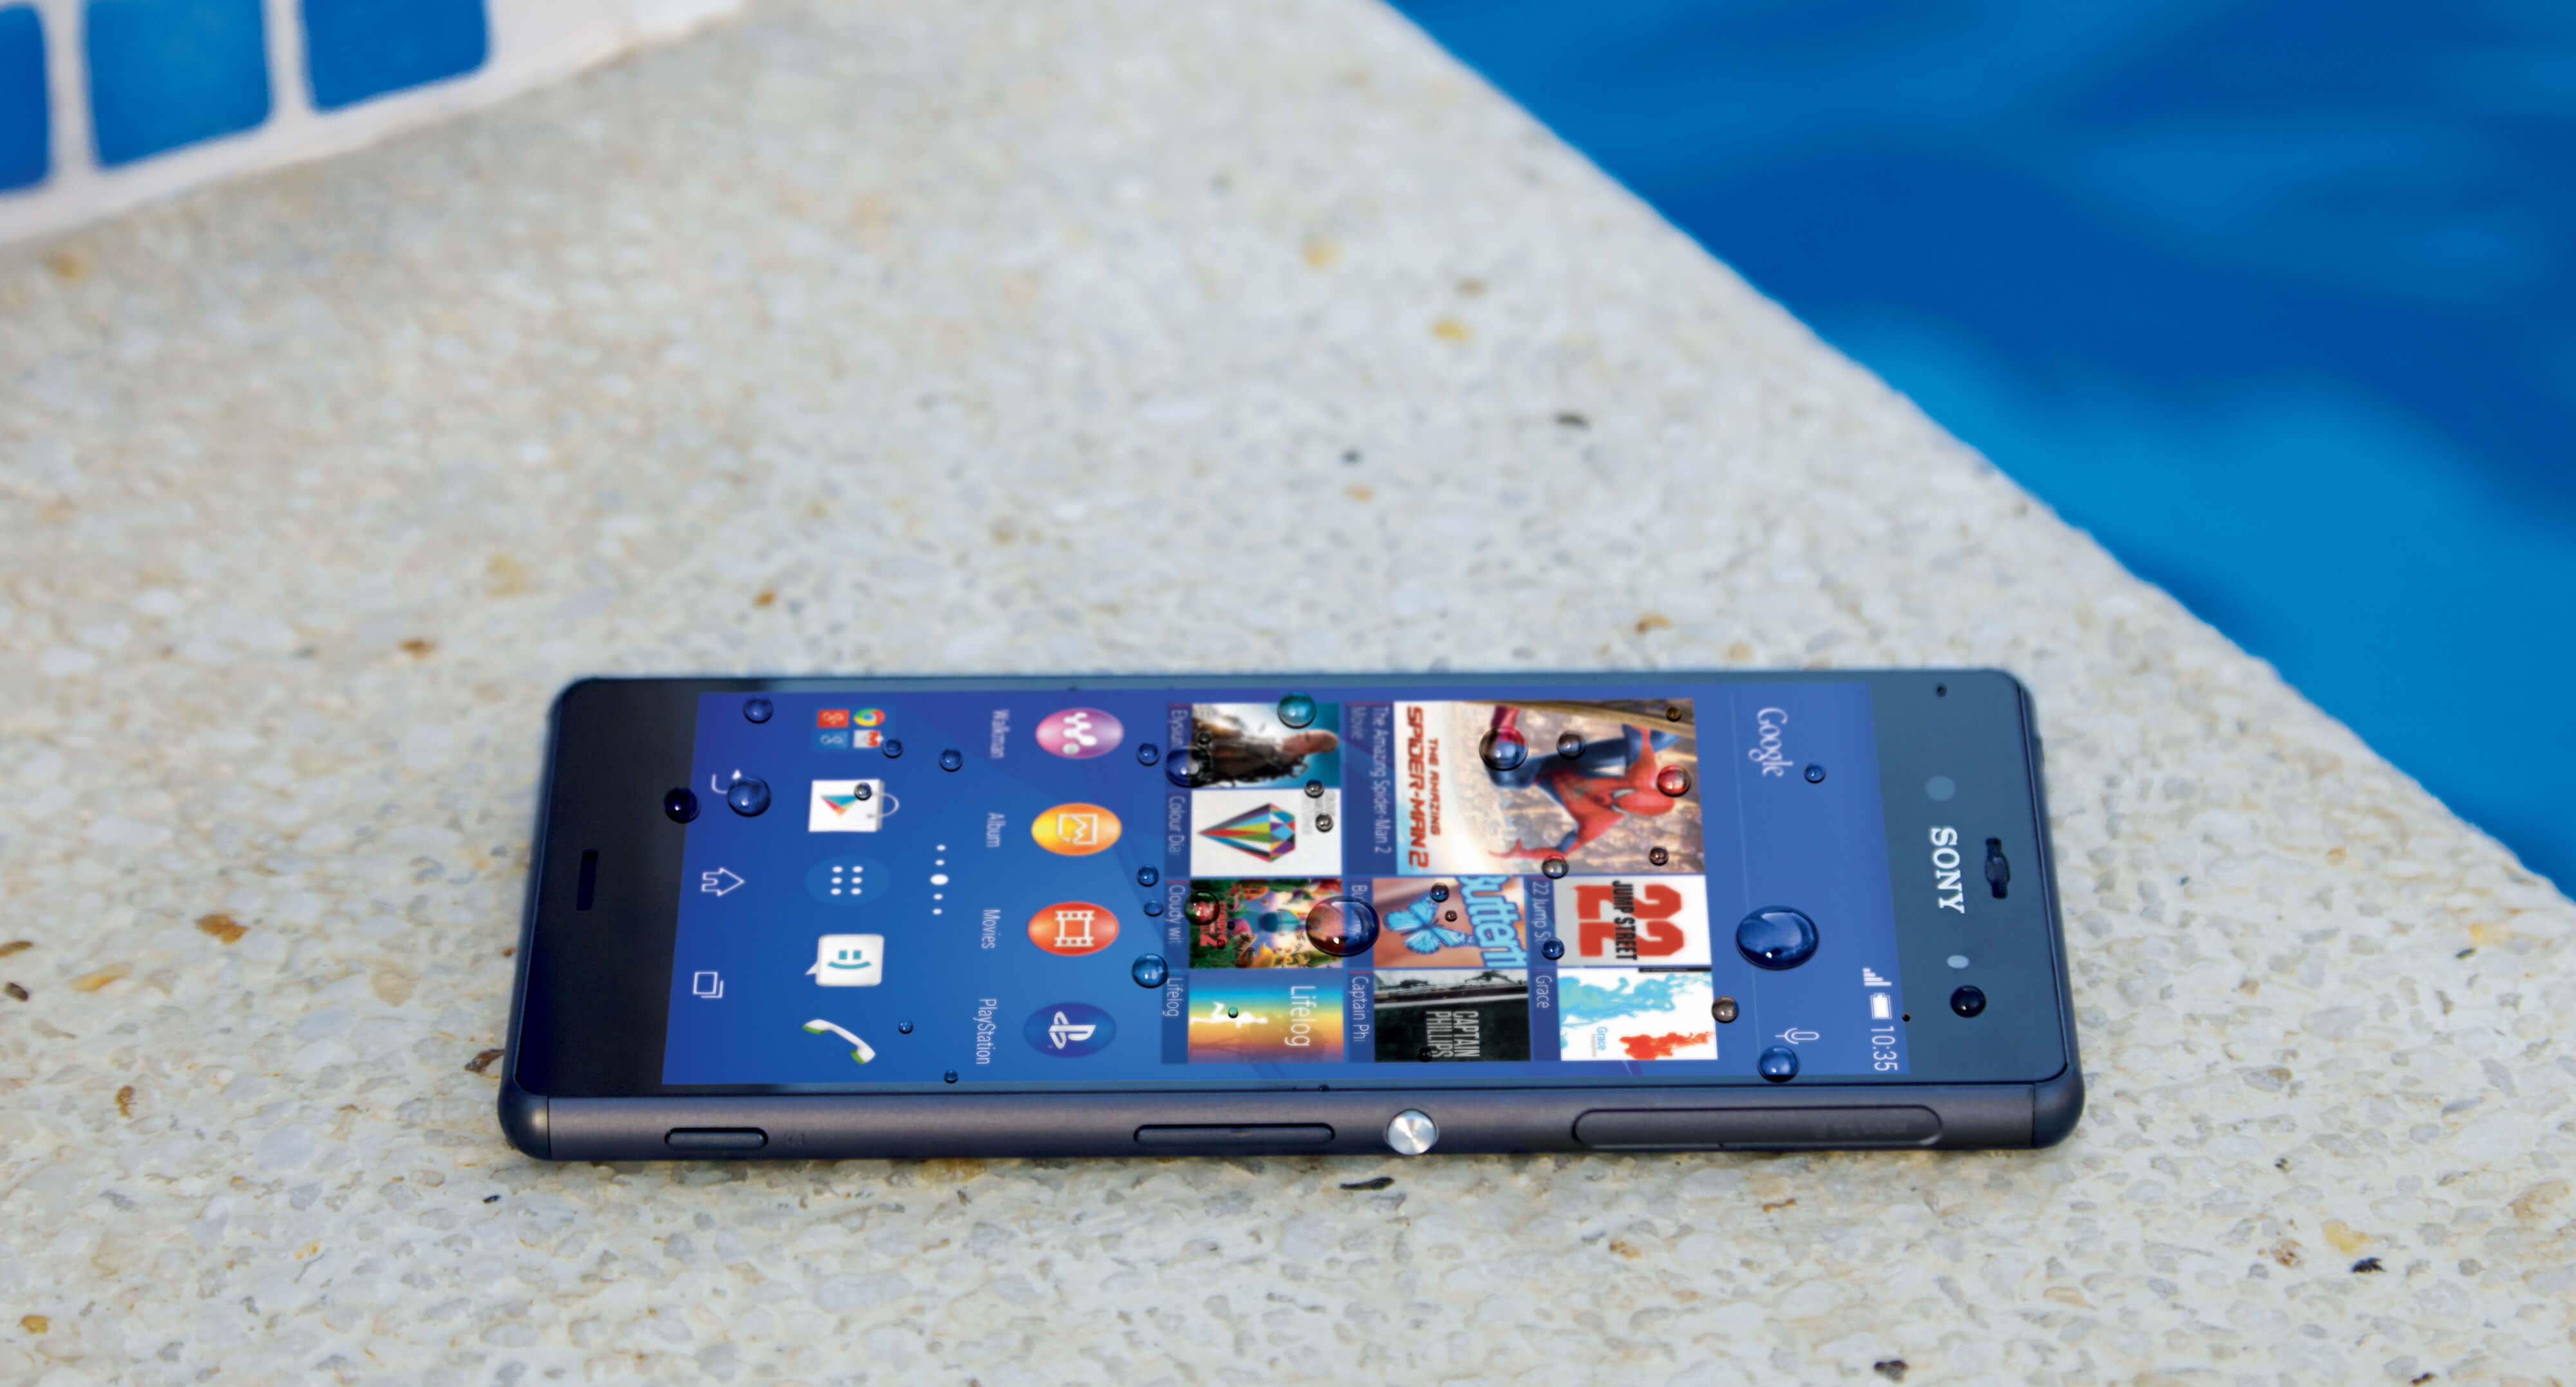 Update Xperia Z3 to Android 6.0.1 Xperia Performance Marshmallow Custom ROM